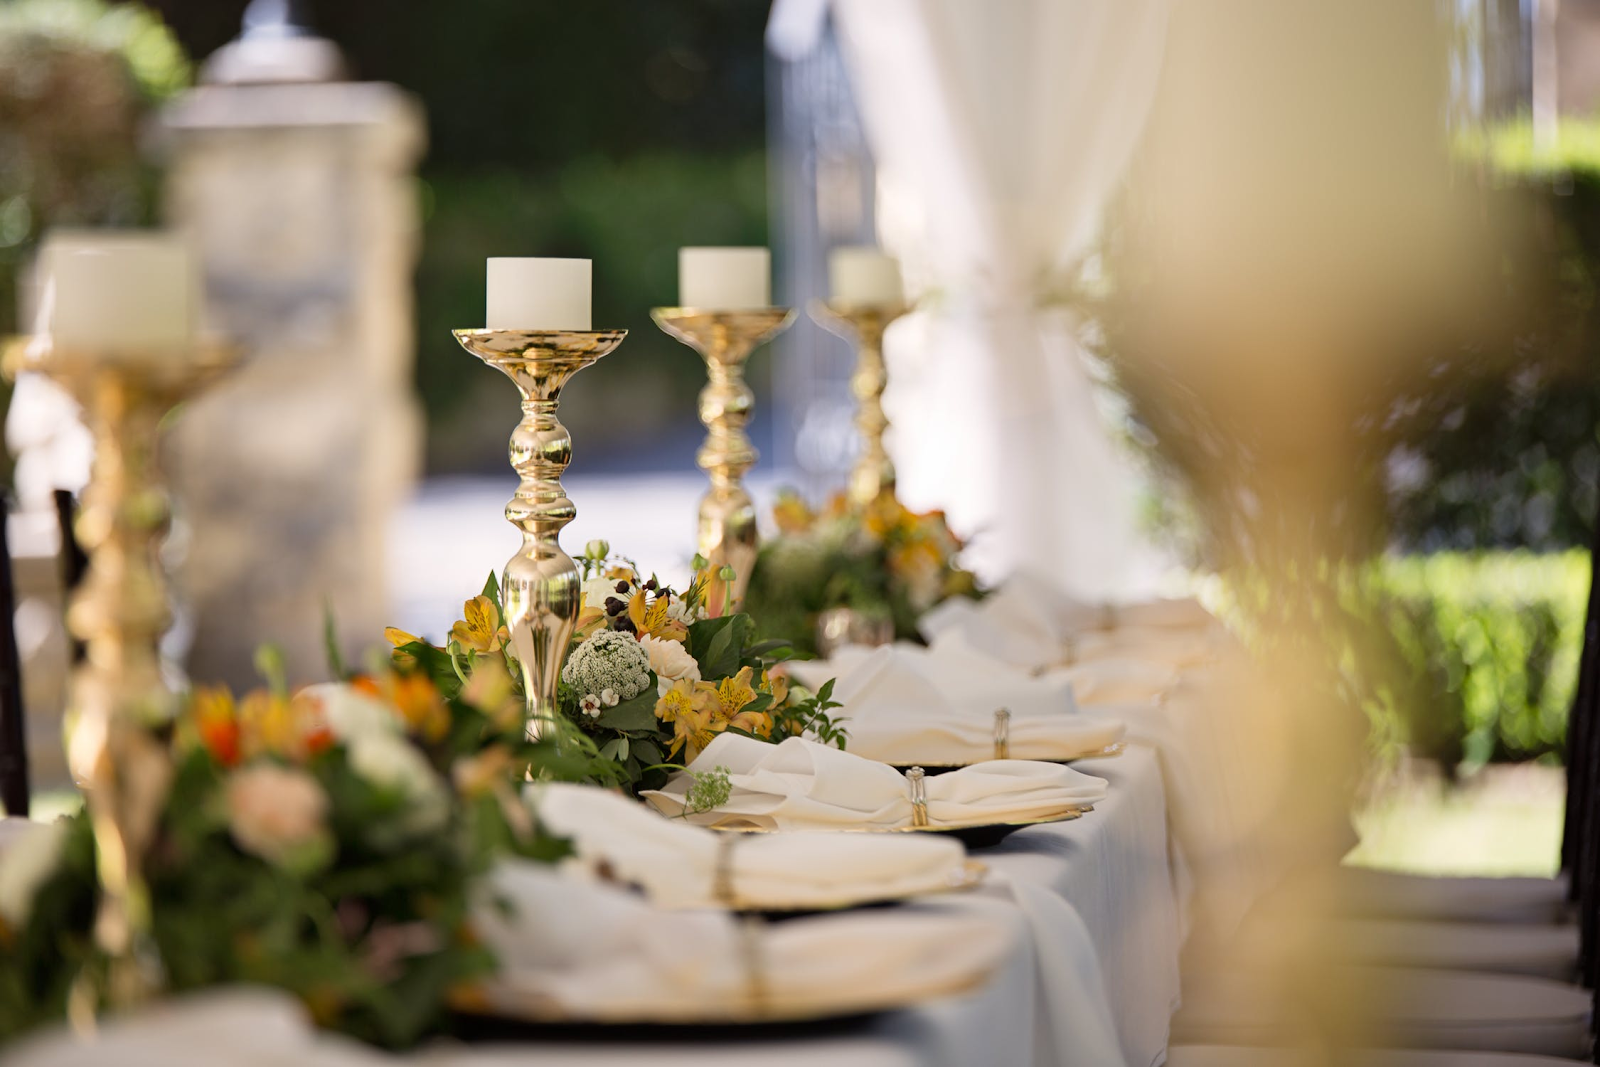 A table set for a wedding reception